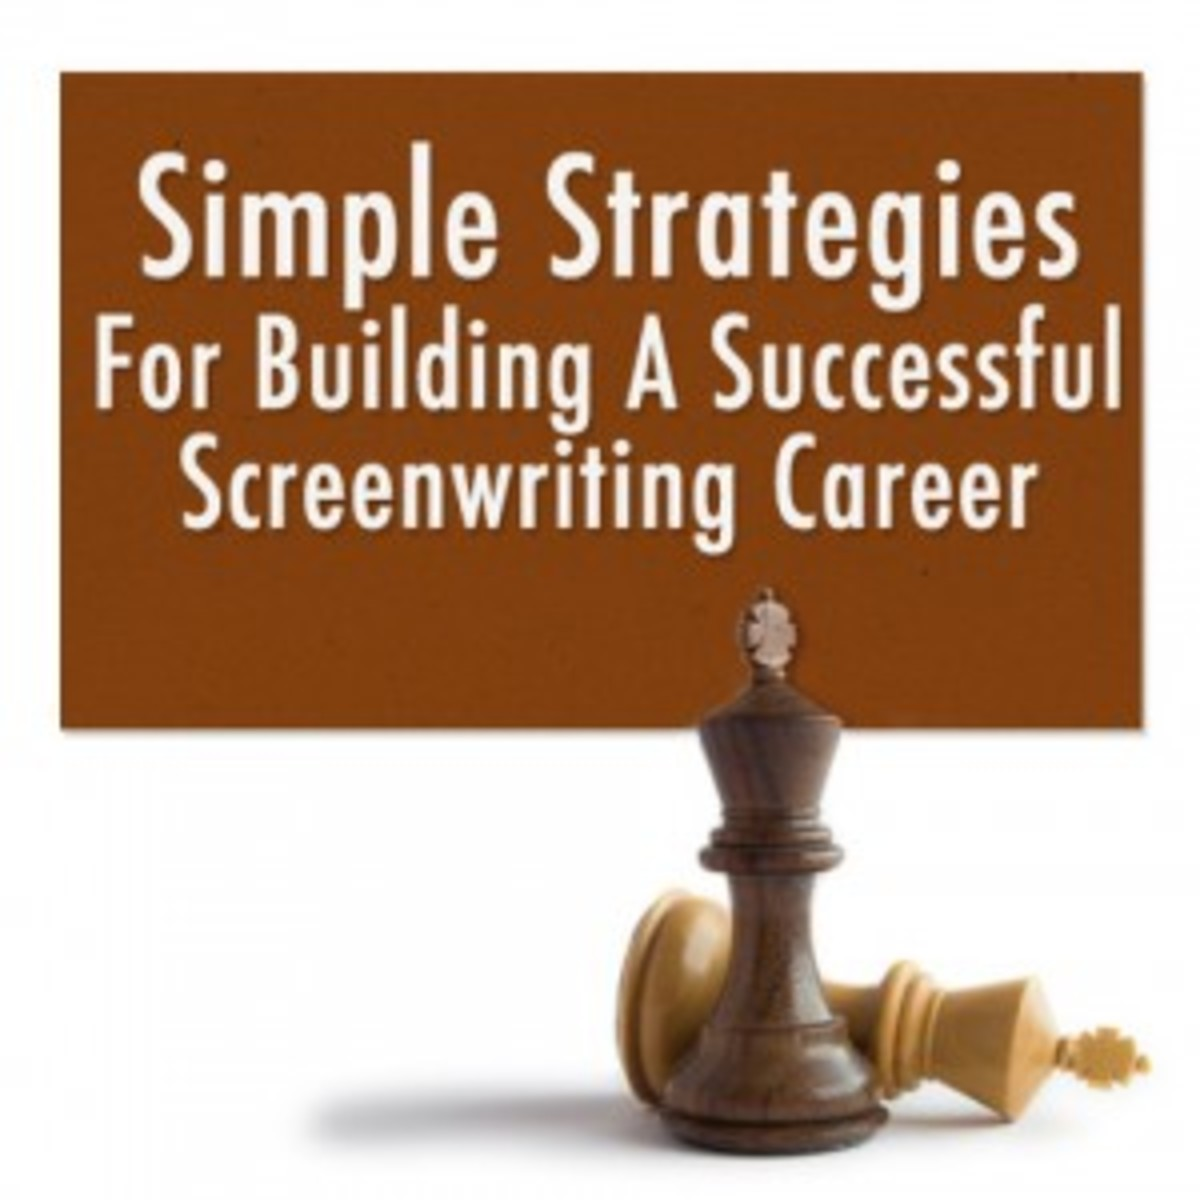 Simple Strategies for Building a Successful Screenwriting Career